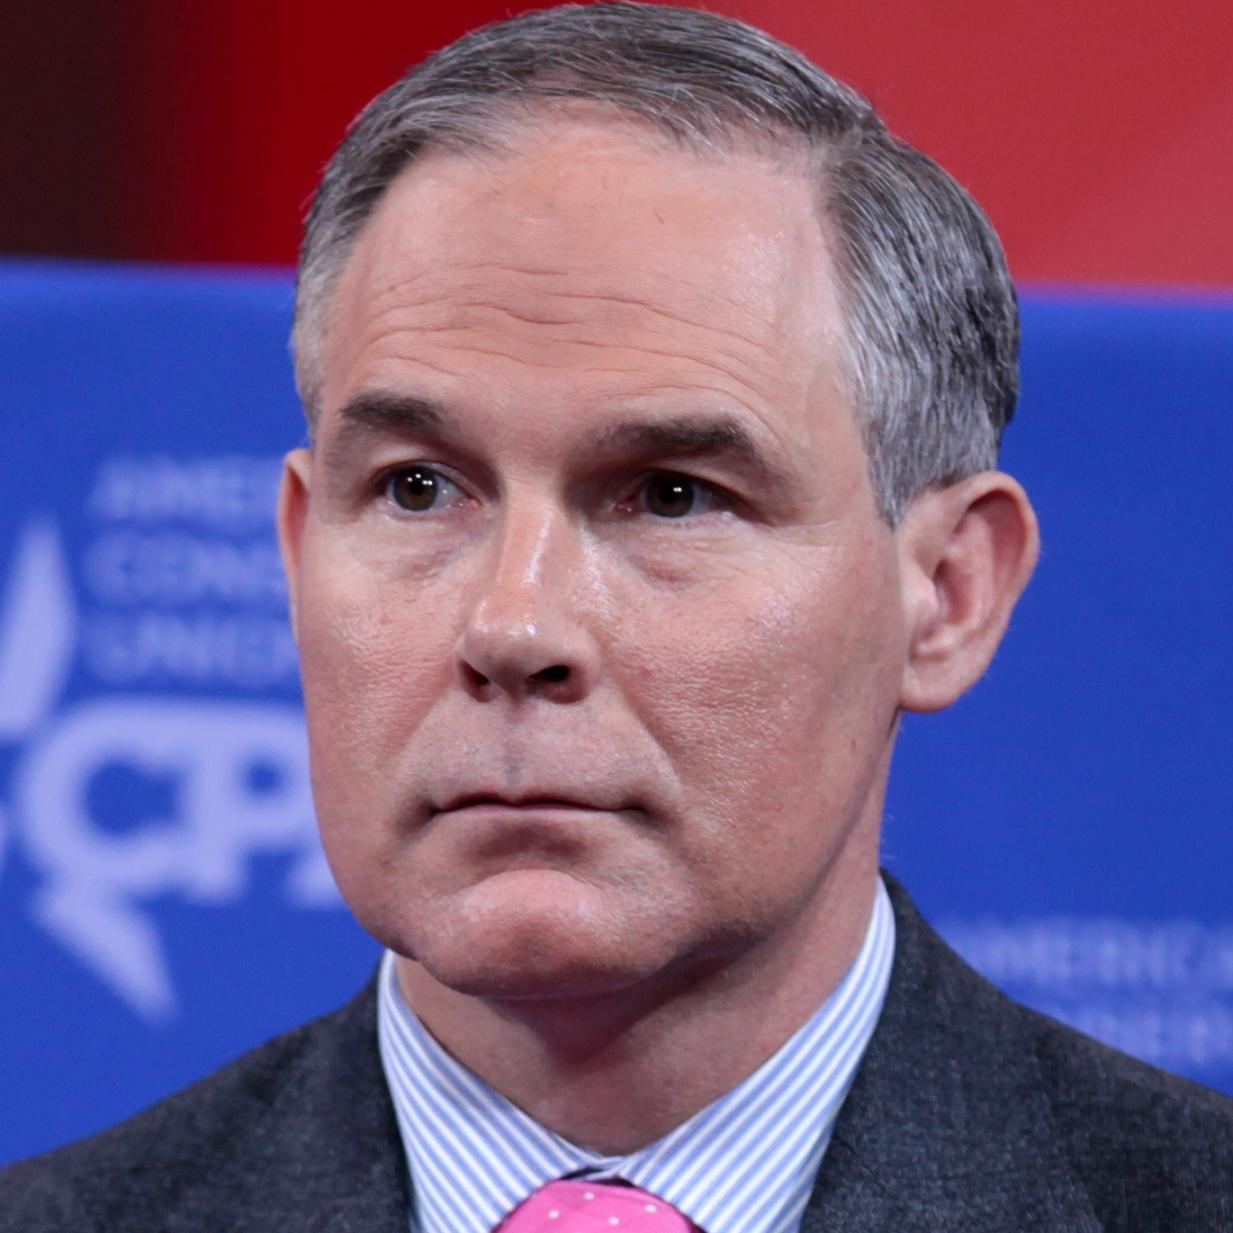 Scott Pruitt Bio, Net Worth, Facts